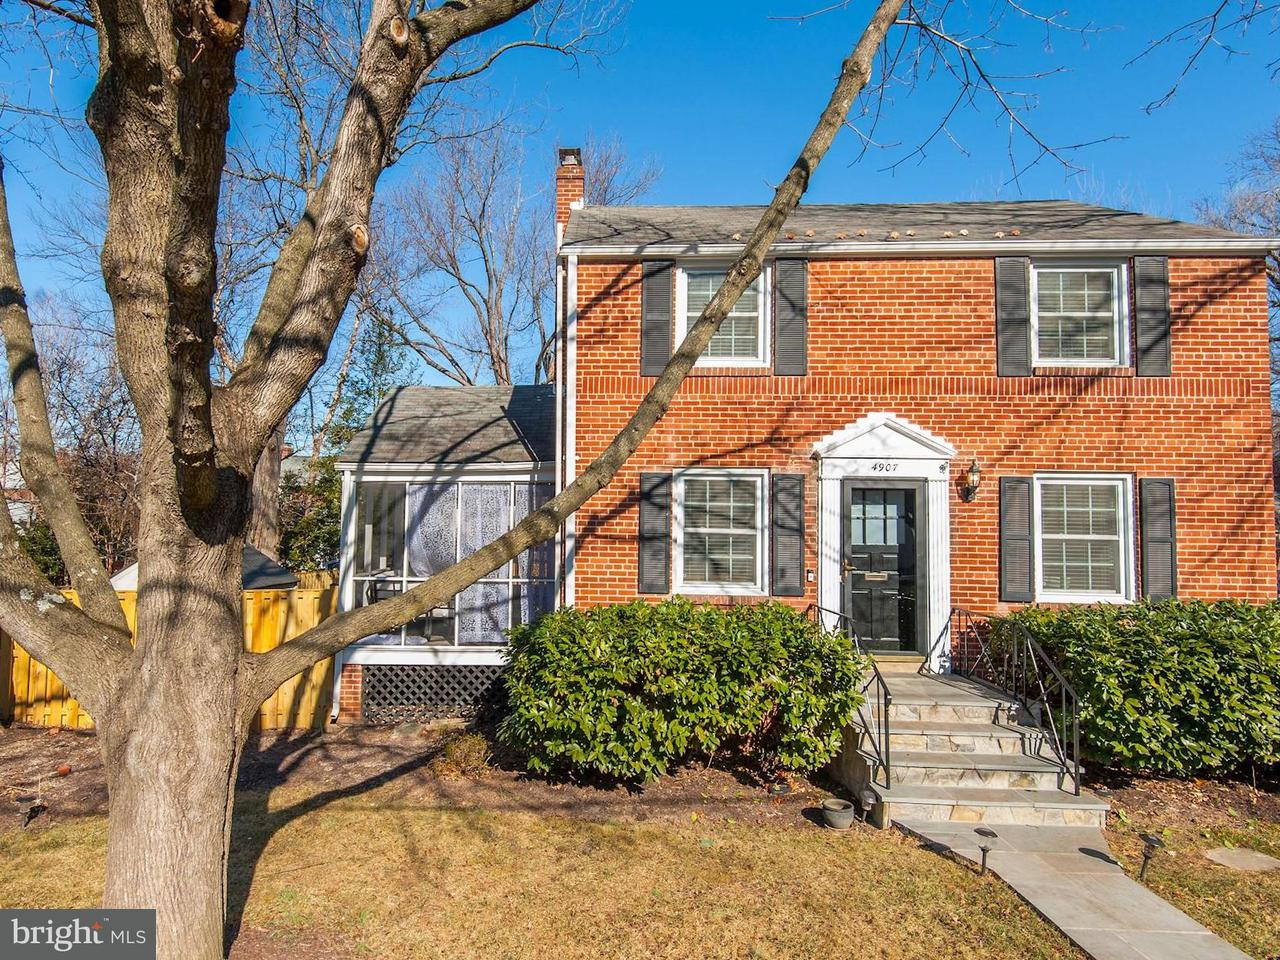 Single Family Home for Sale at 4907 Old Dominion Drive 4907 Old Dominion Drive Arlington, Virginia 22207 United States